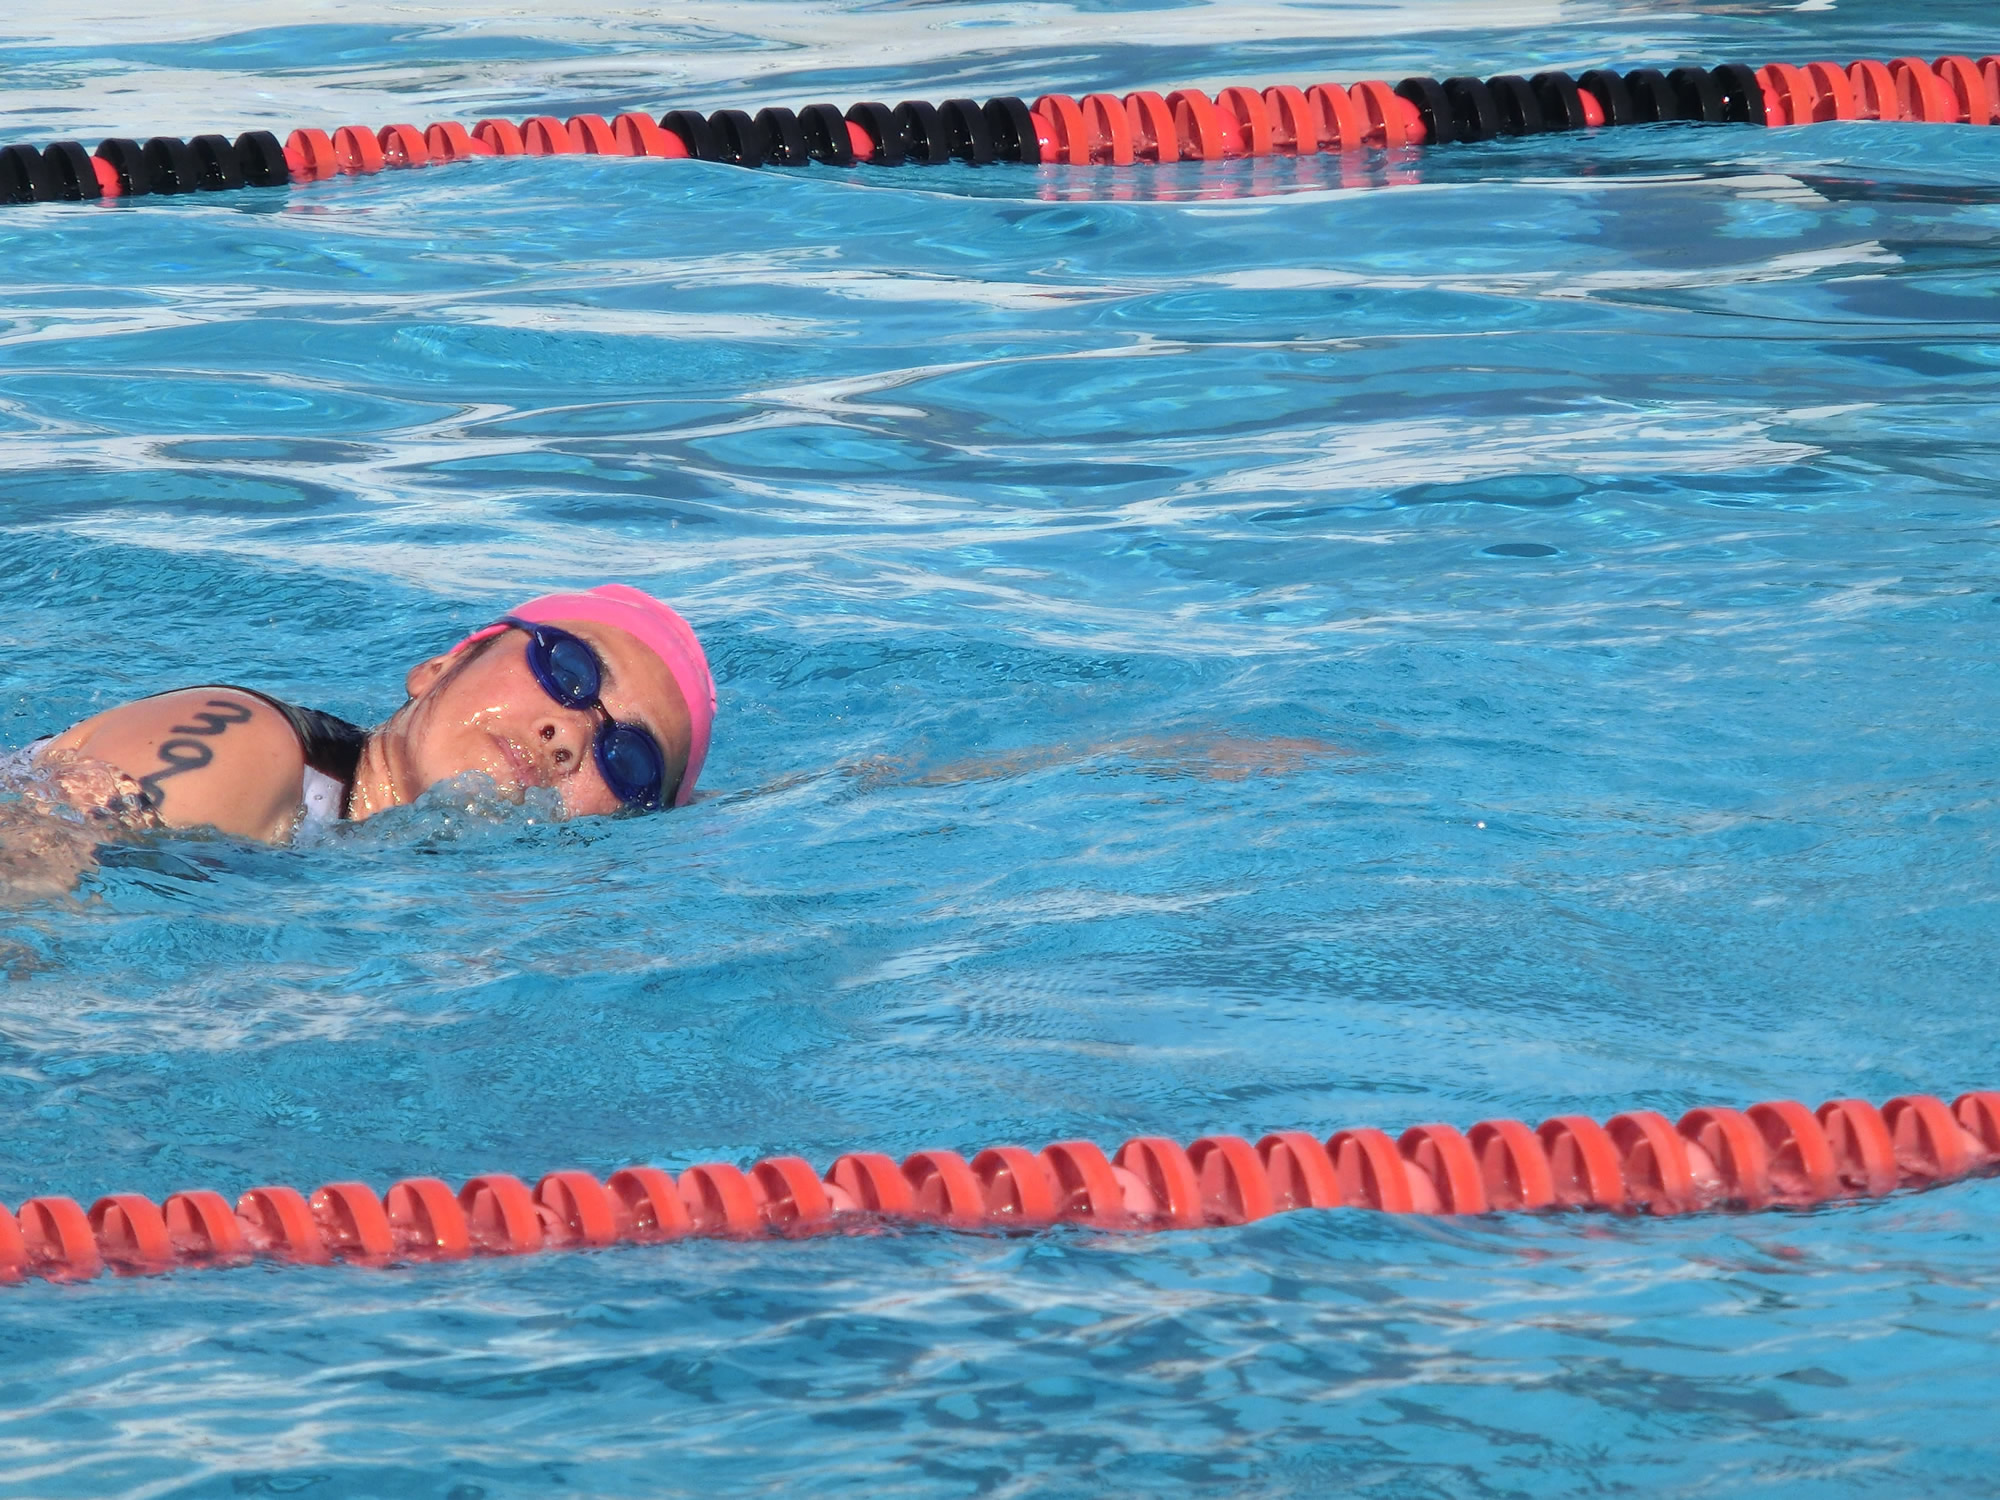 Cathy swimming (2012 February 25) Race on the Base